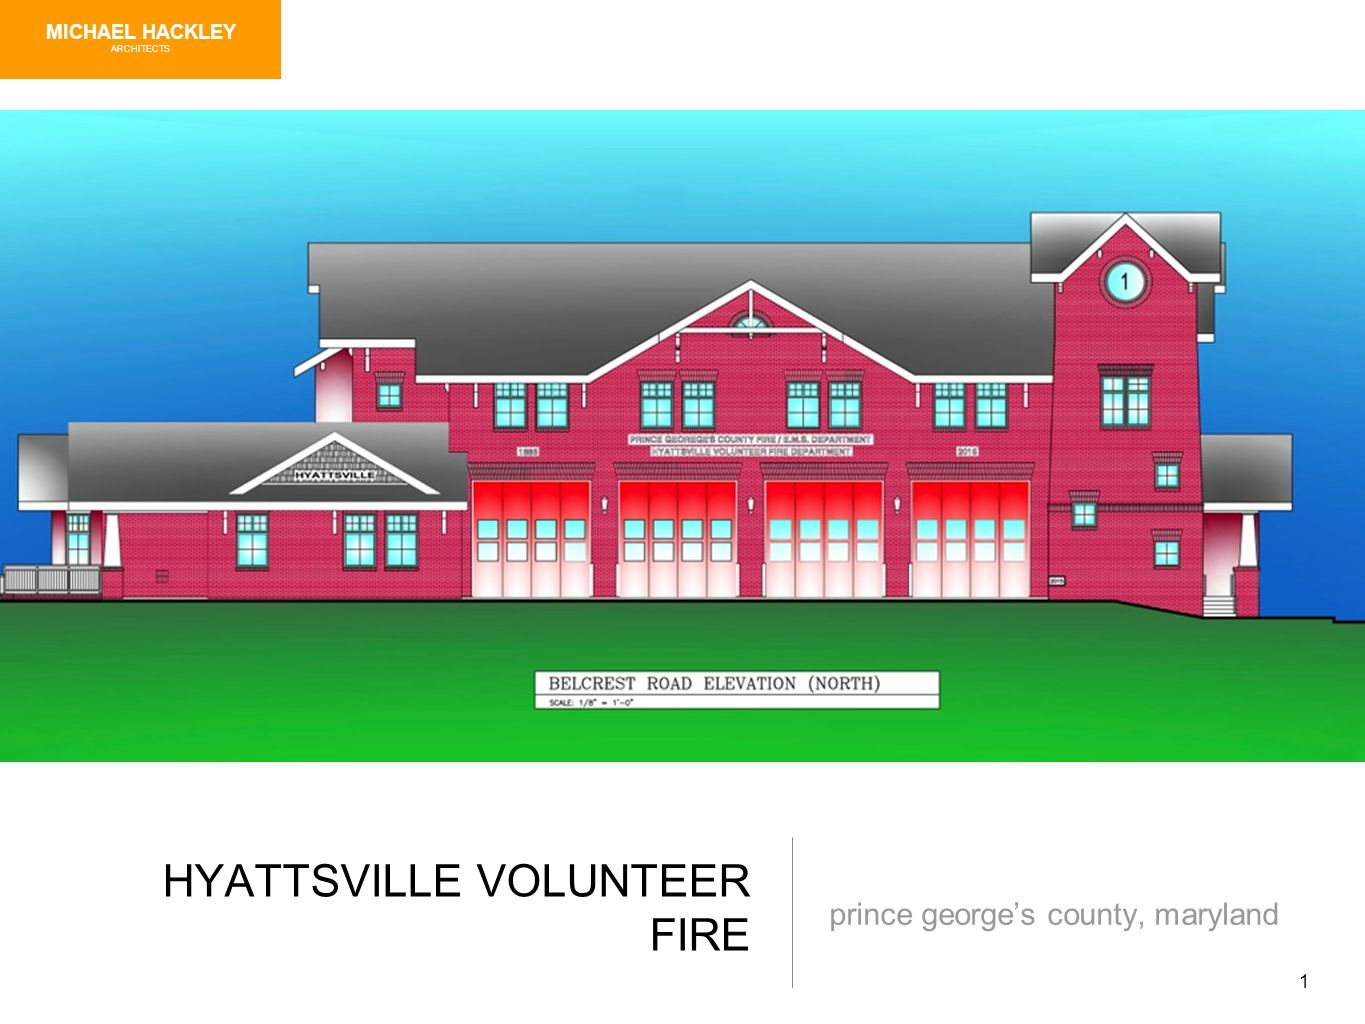 1 HYATTSVILLE VOLUNTEER FIRE prince georges county, maryland MICHAEL HACKLEY ARCHITECTS